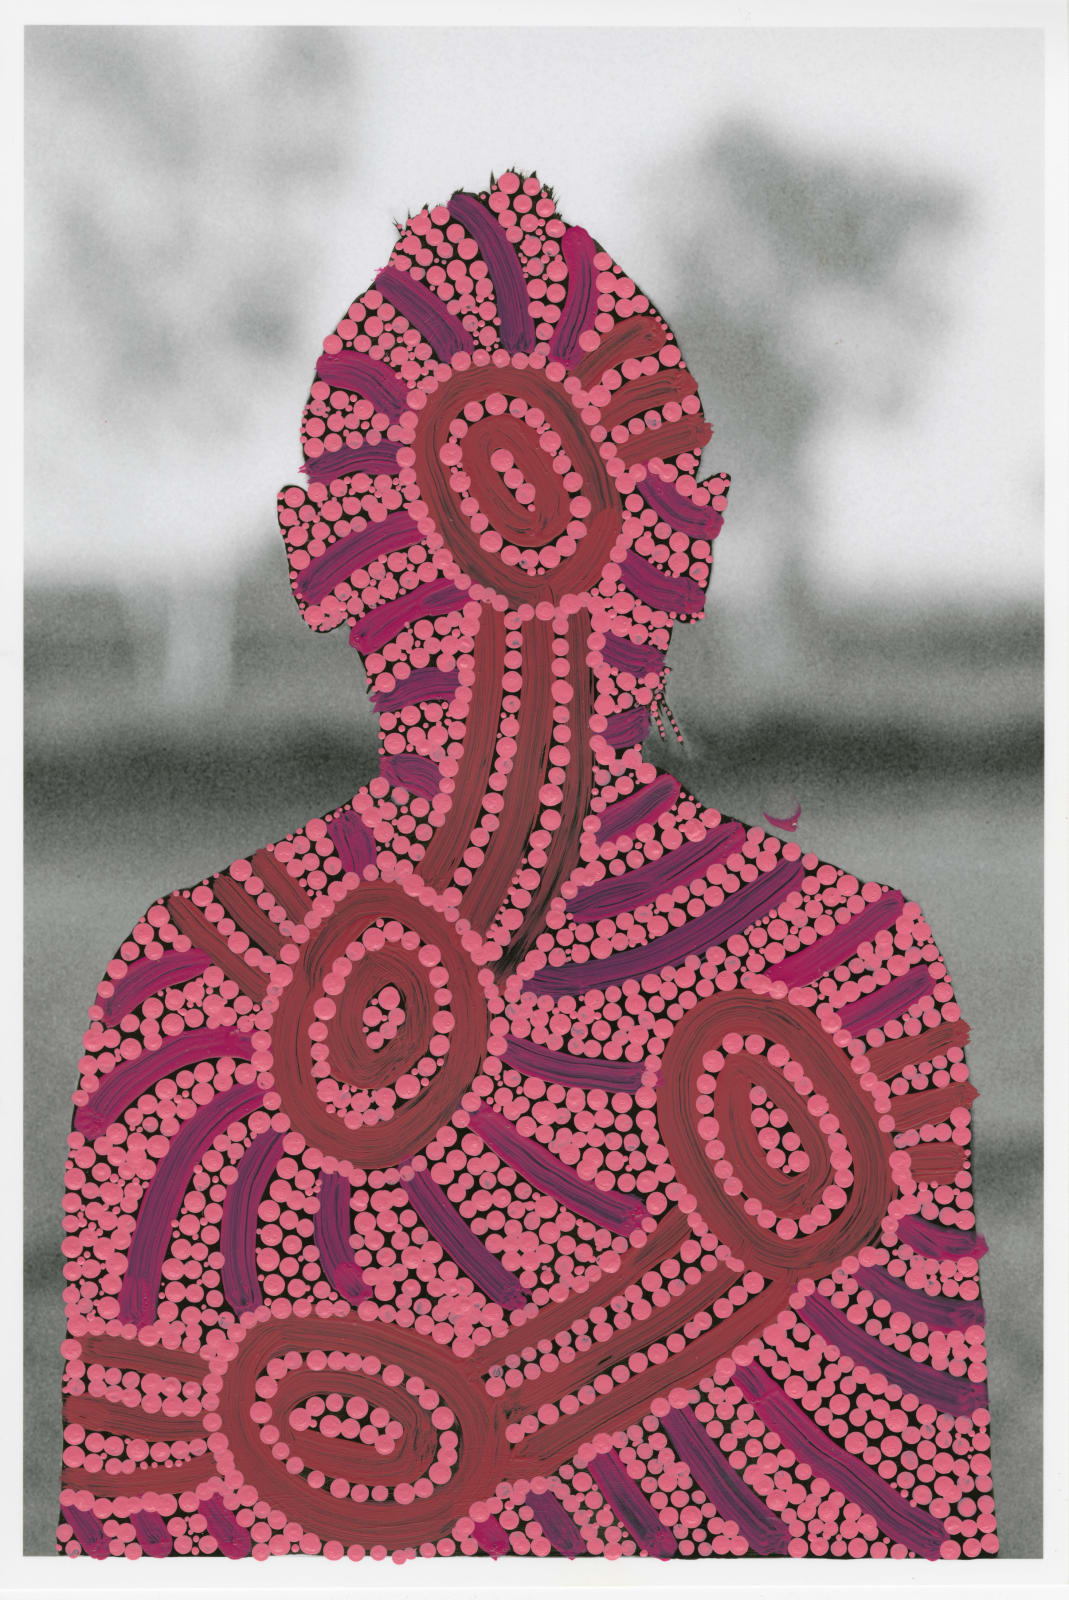 Patrick Waterhouse, Front Portrait / Restricted with Judith Nungarrayi Martin, 2014 - 2018